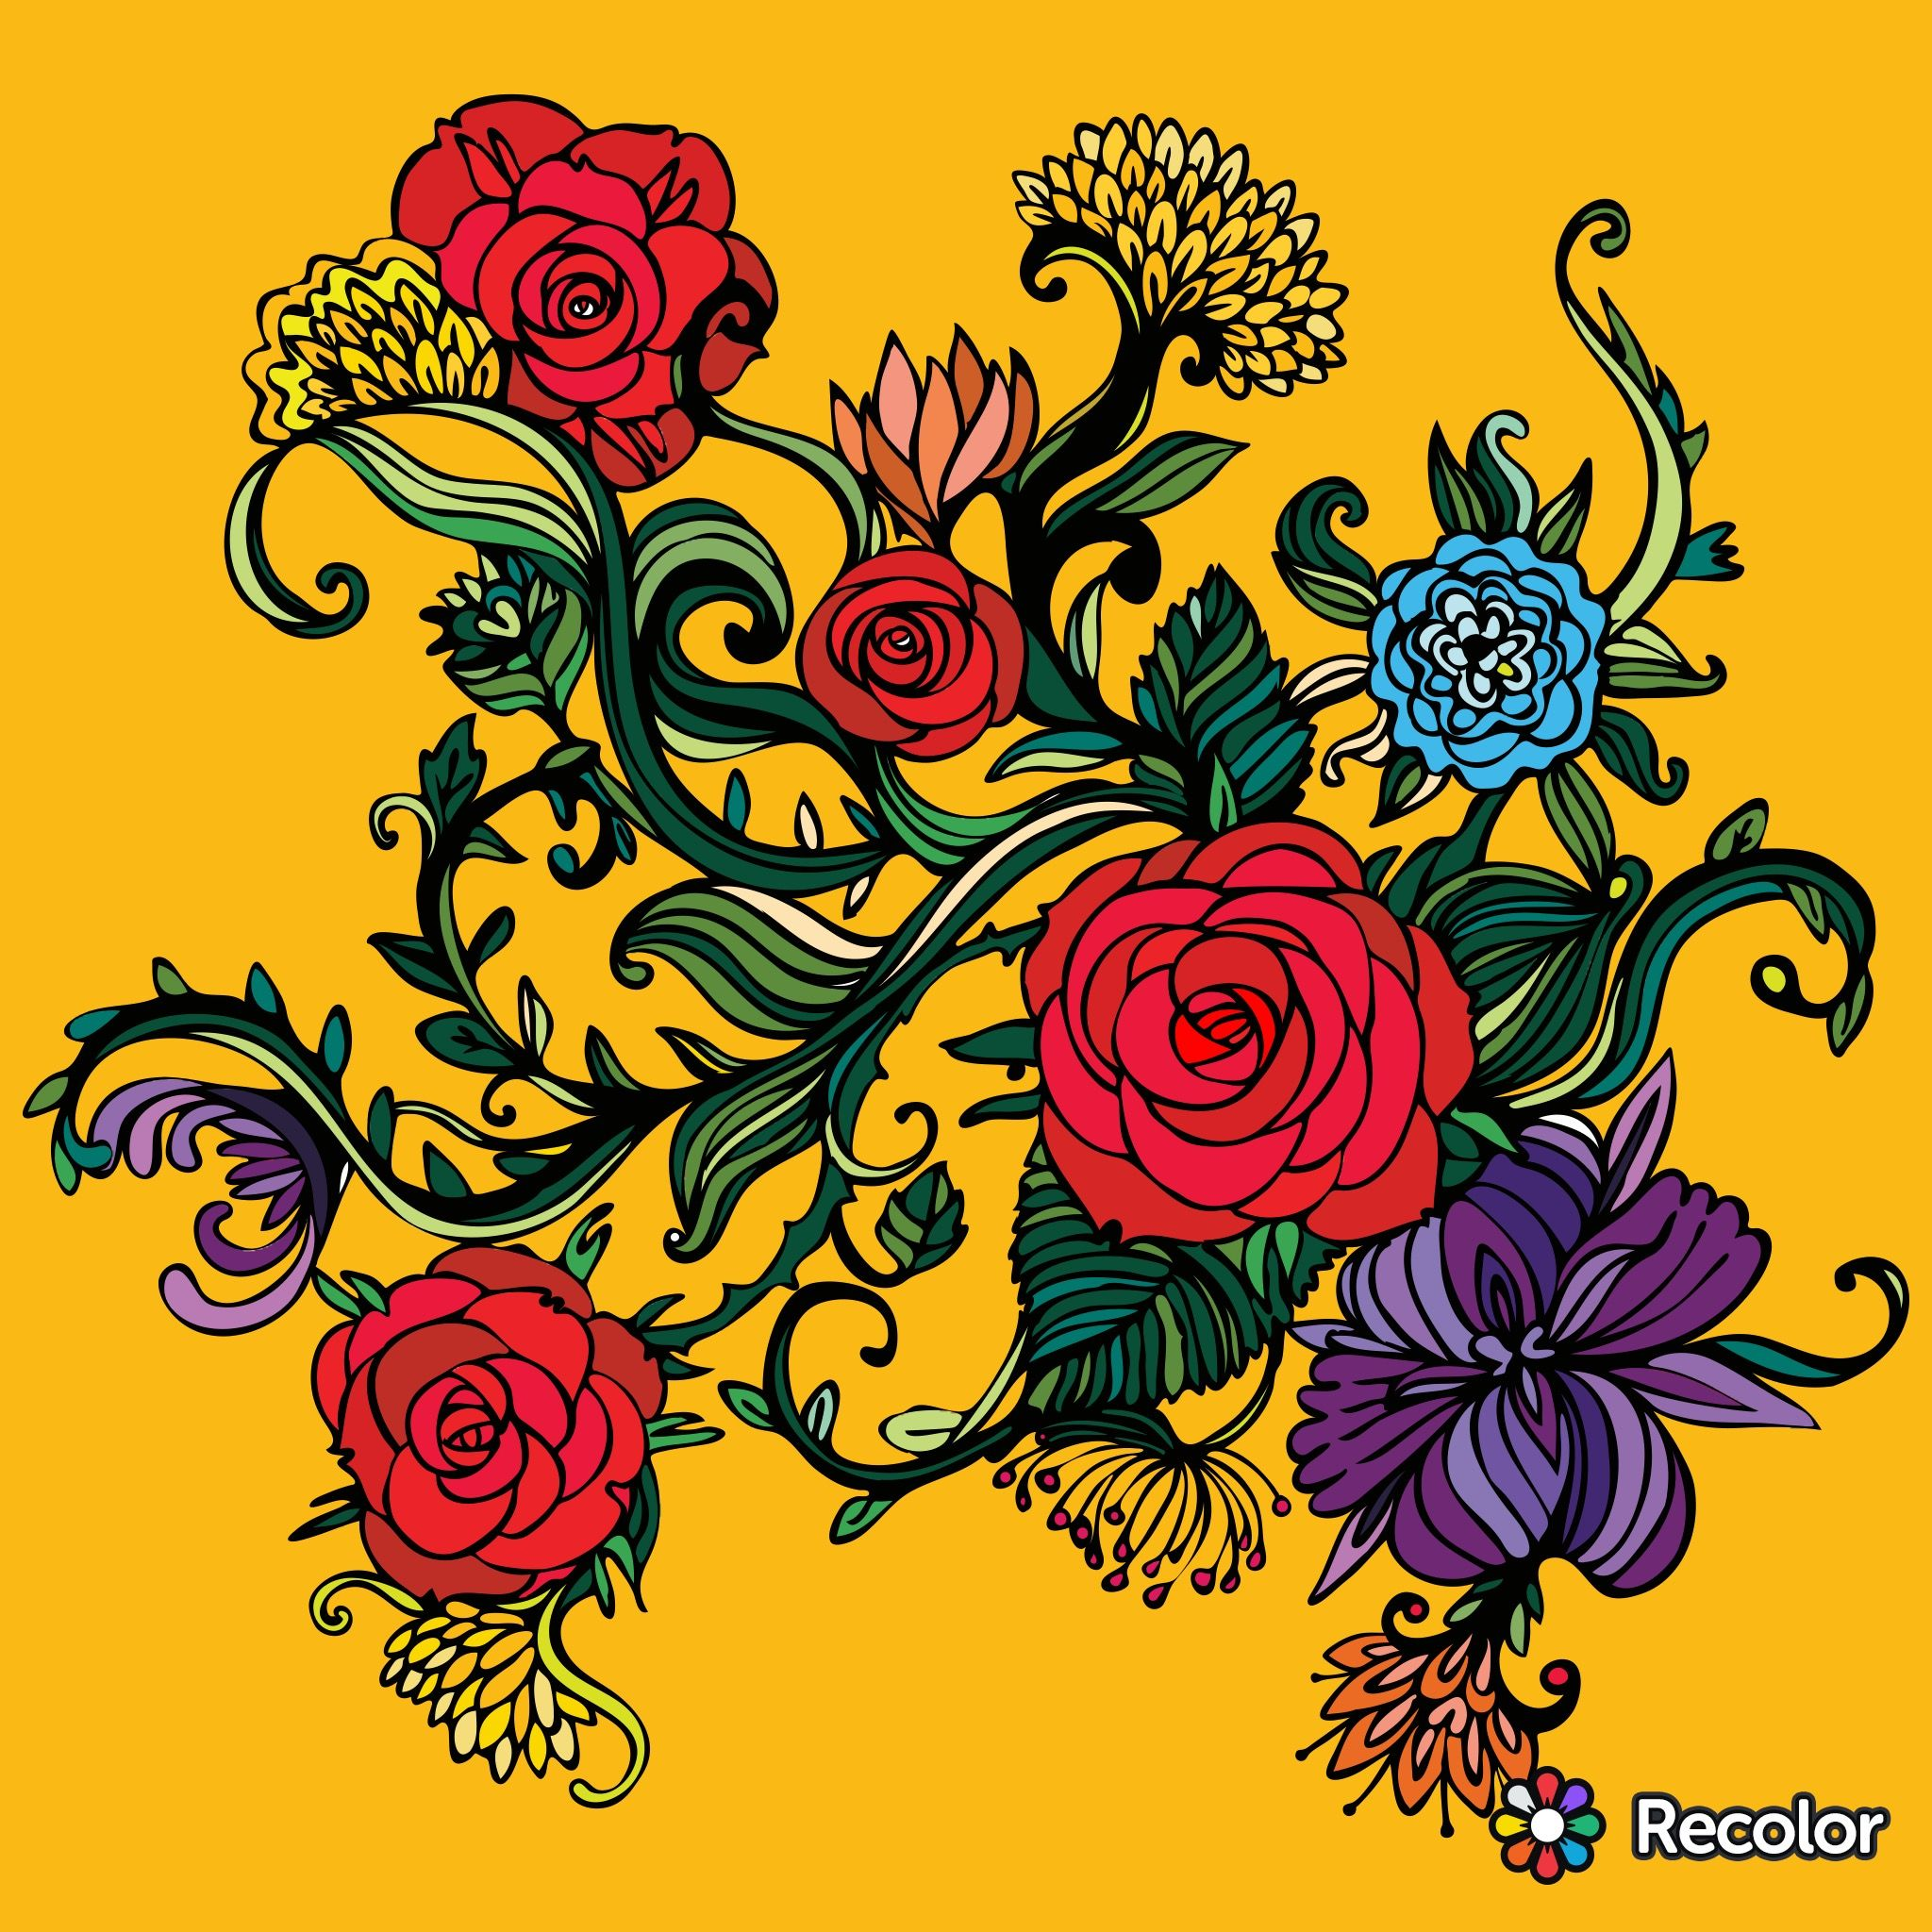 Coloring pages app - Check Out The Recolor App Adult Coloring Pages